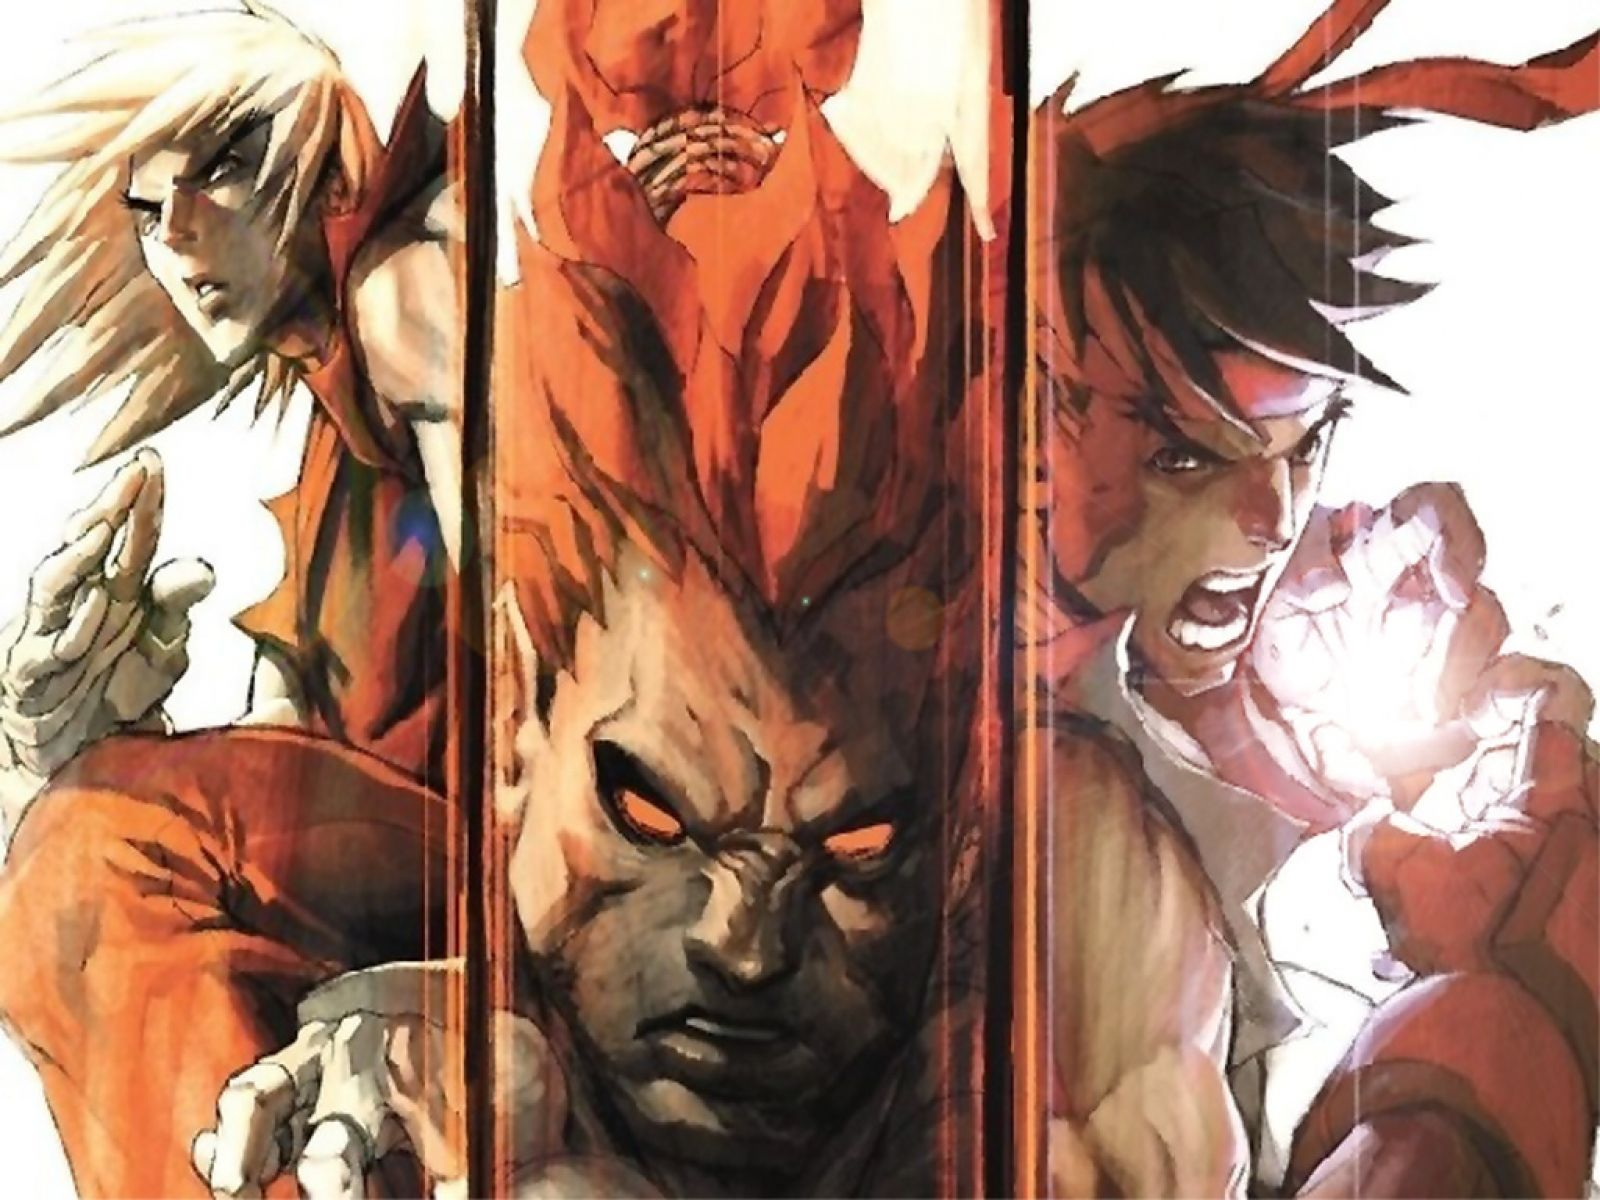 ryu vs ken fighting games wallpaper image featuring street fighter